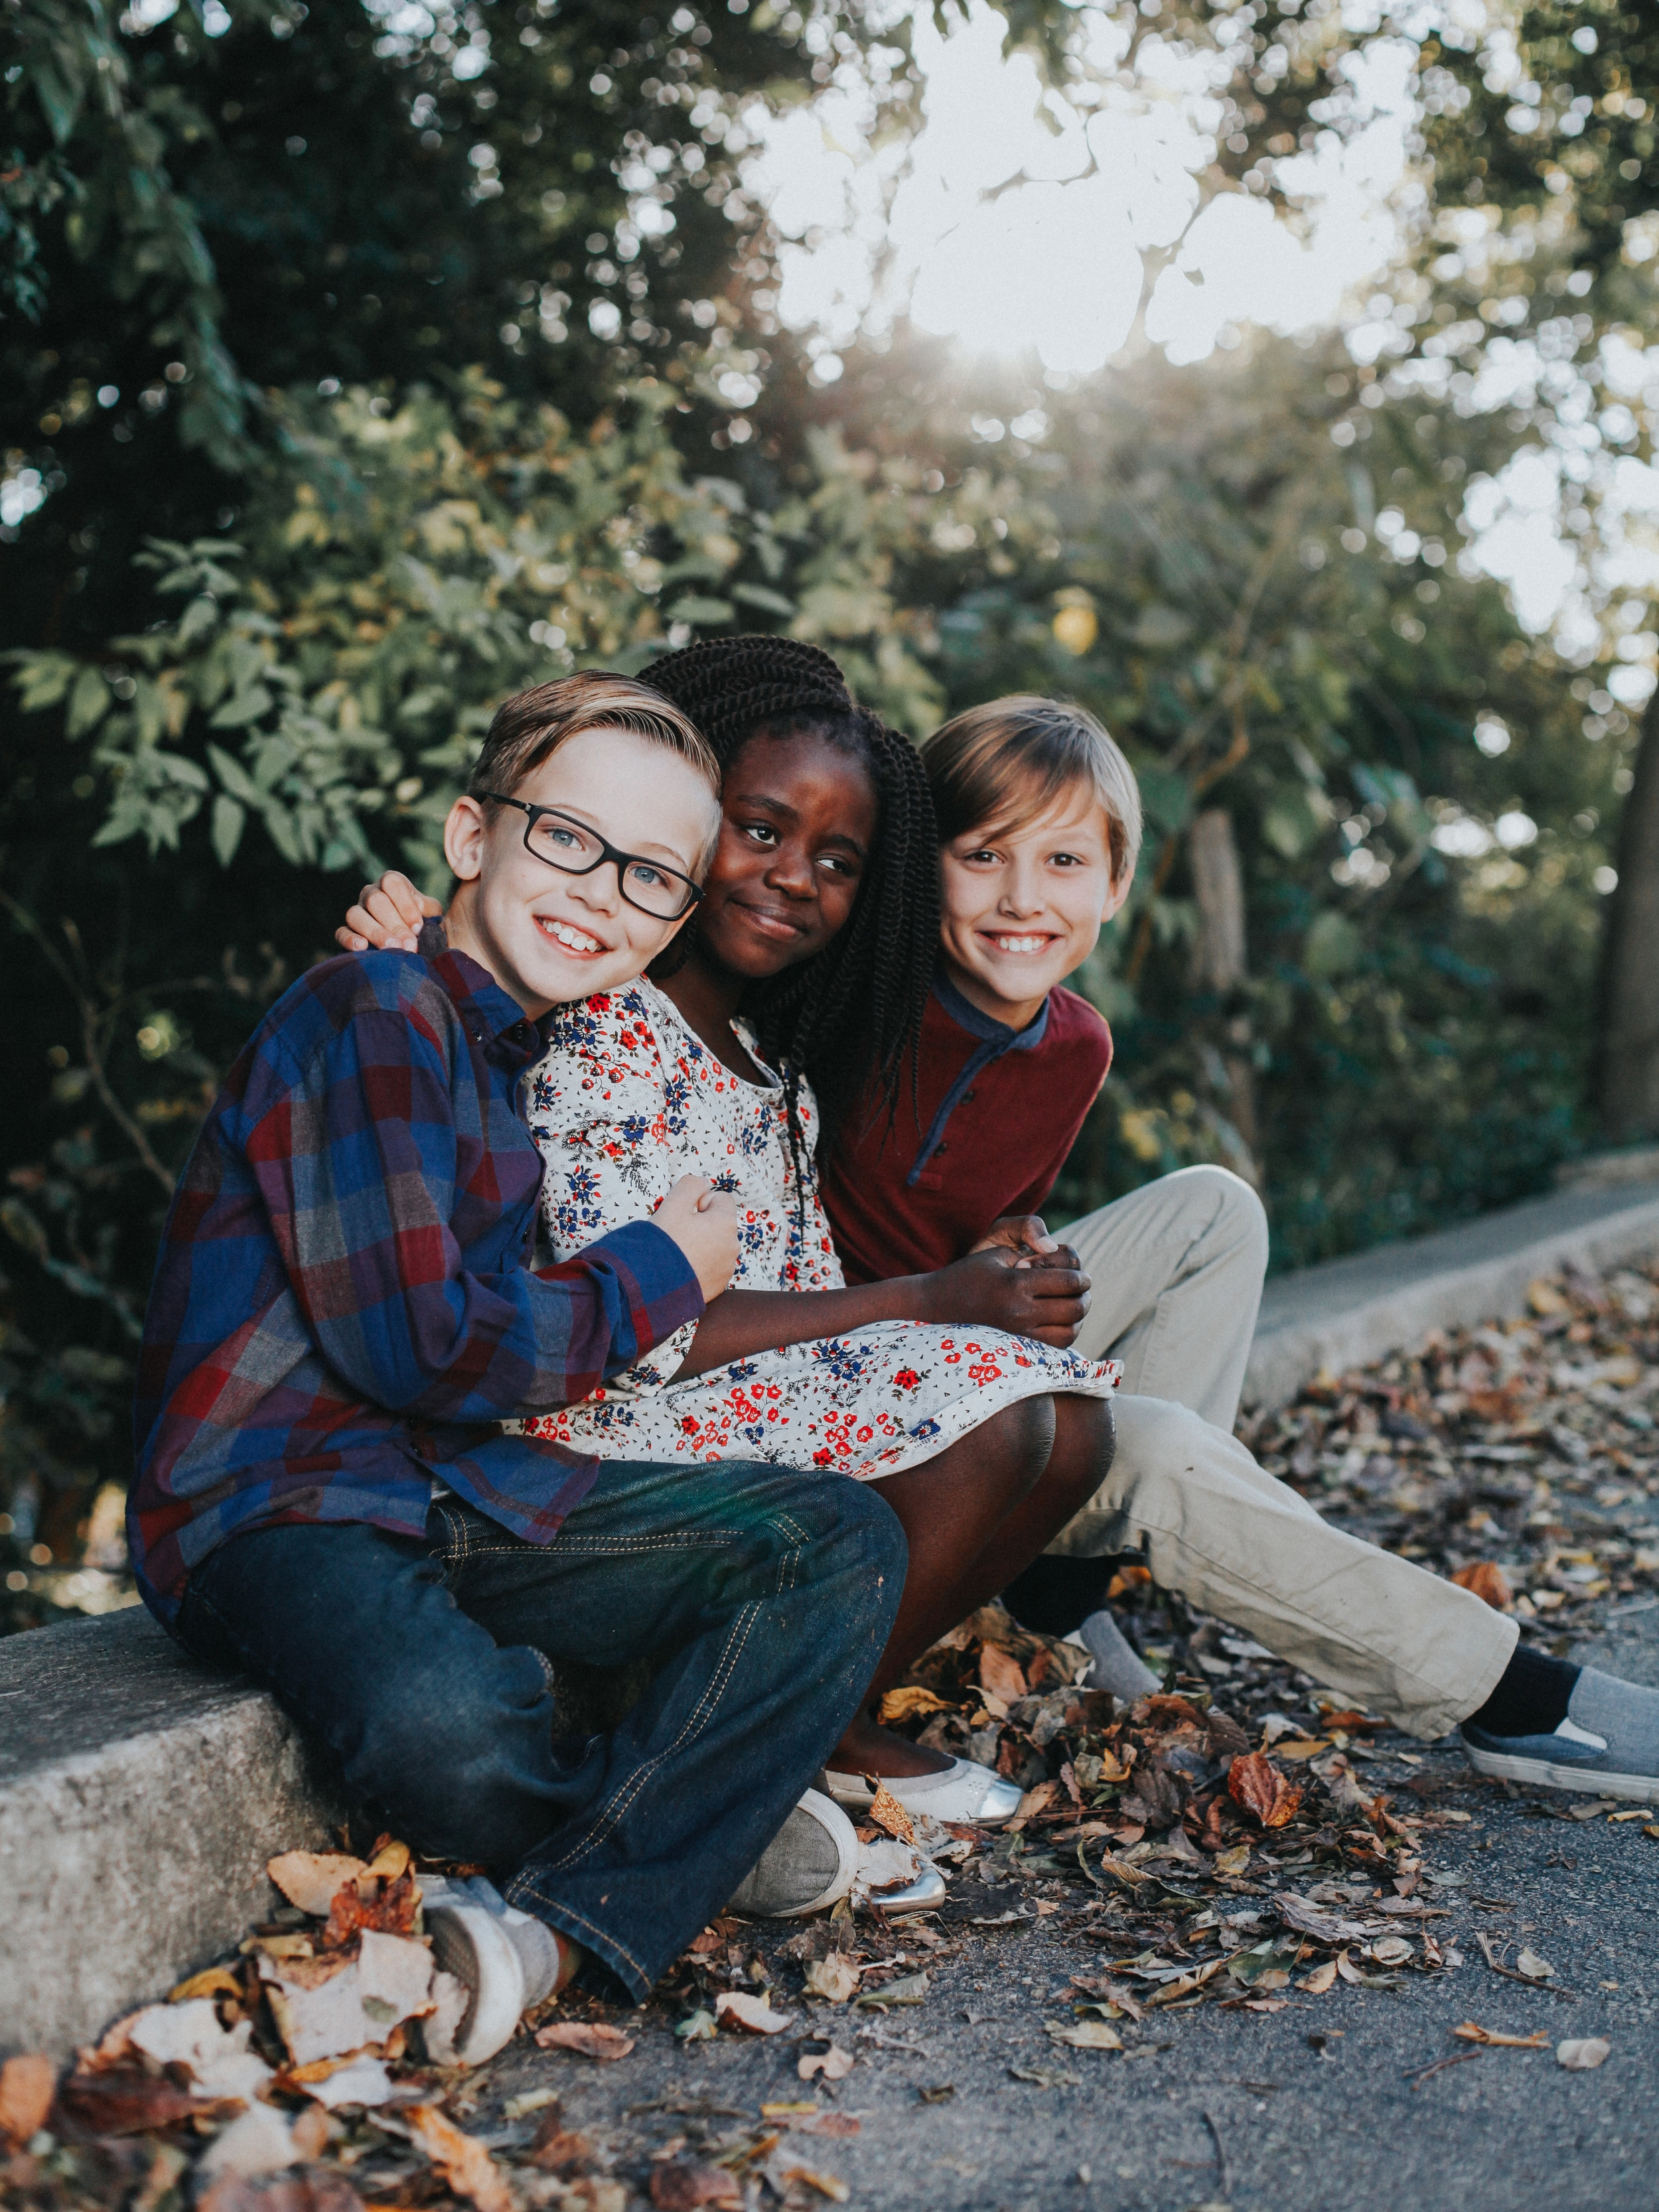 Our three amigos - These three kids - Zeke, Titus, and Zoe - are the light of my life. The older they get the cooler they become. I love their humor, their joys, and even their dislikes because thats what makes them THEM.We get asked a lot how the boys